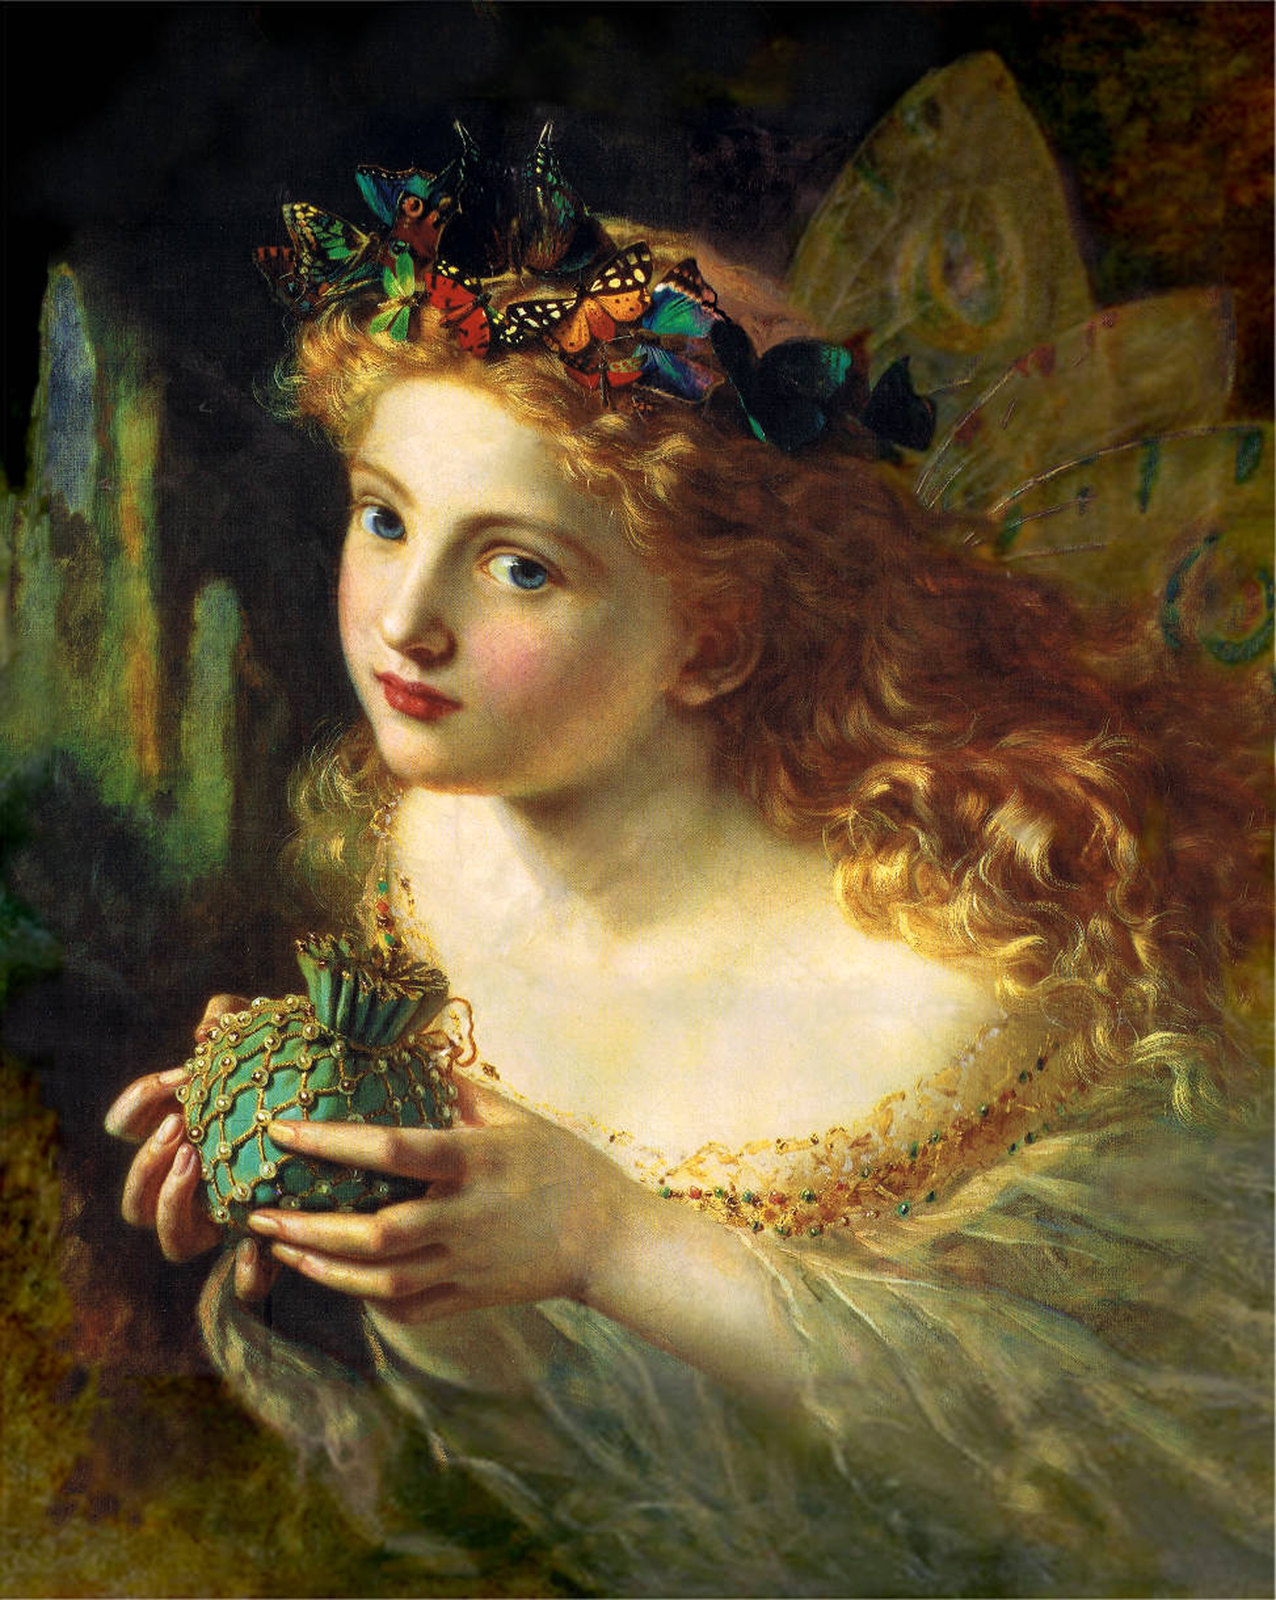 Take the Fair Face of Woman, and Gently Suspending, With Butterflies, Flowers, and Jewels Attending, Thus Your Fairy is Made of Most Beautiful Things by Sophie Gengembre Anderson (1823 - 1903)